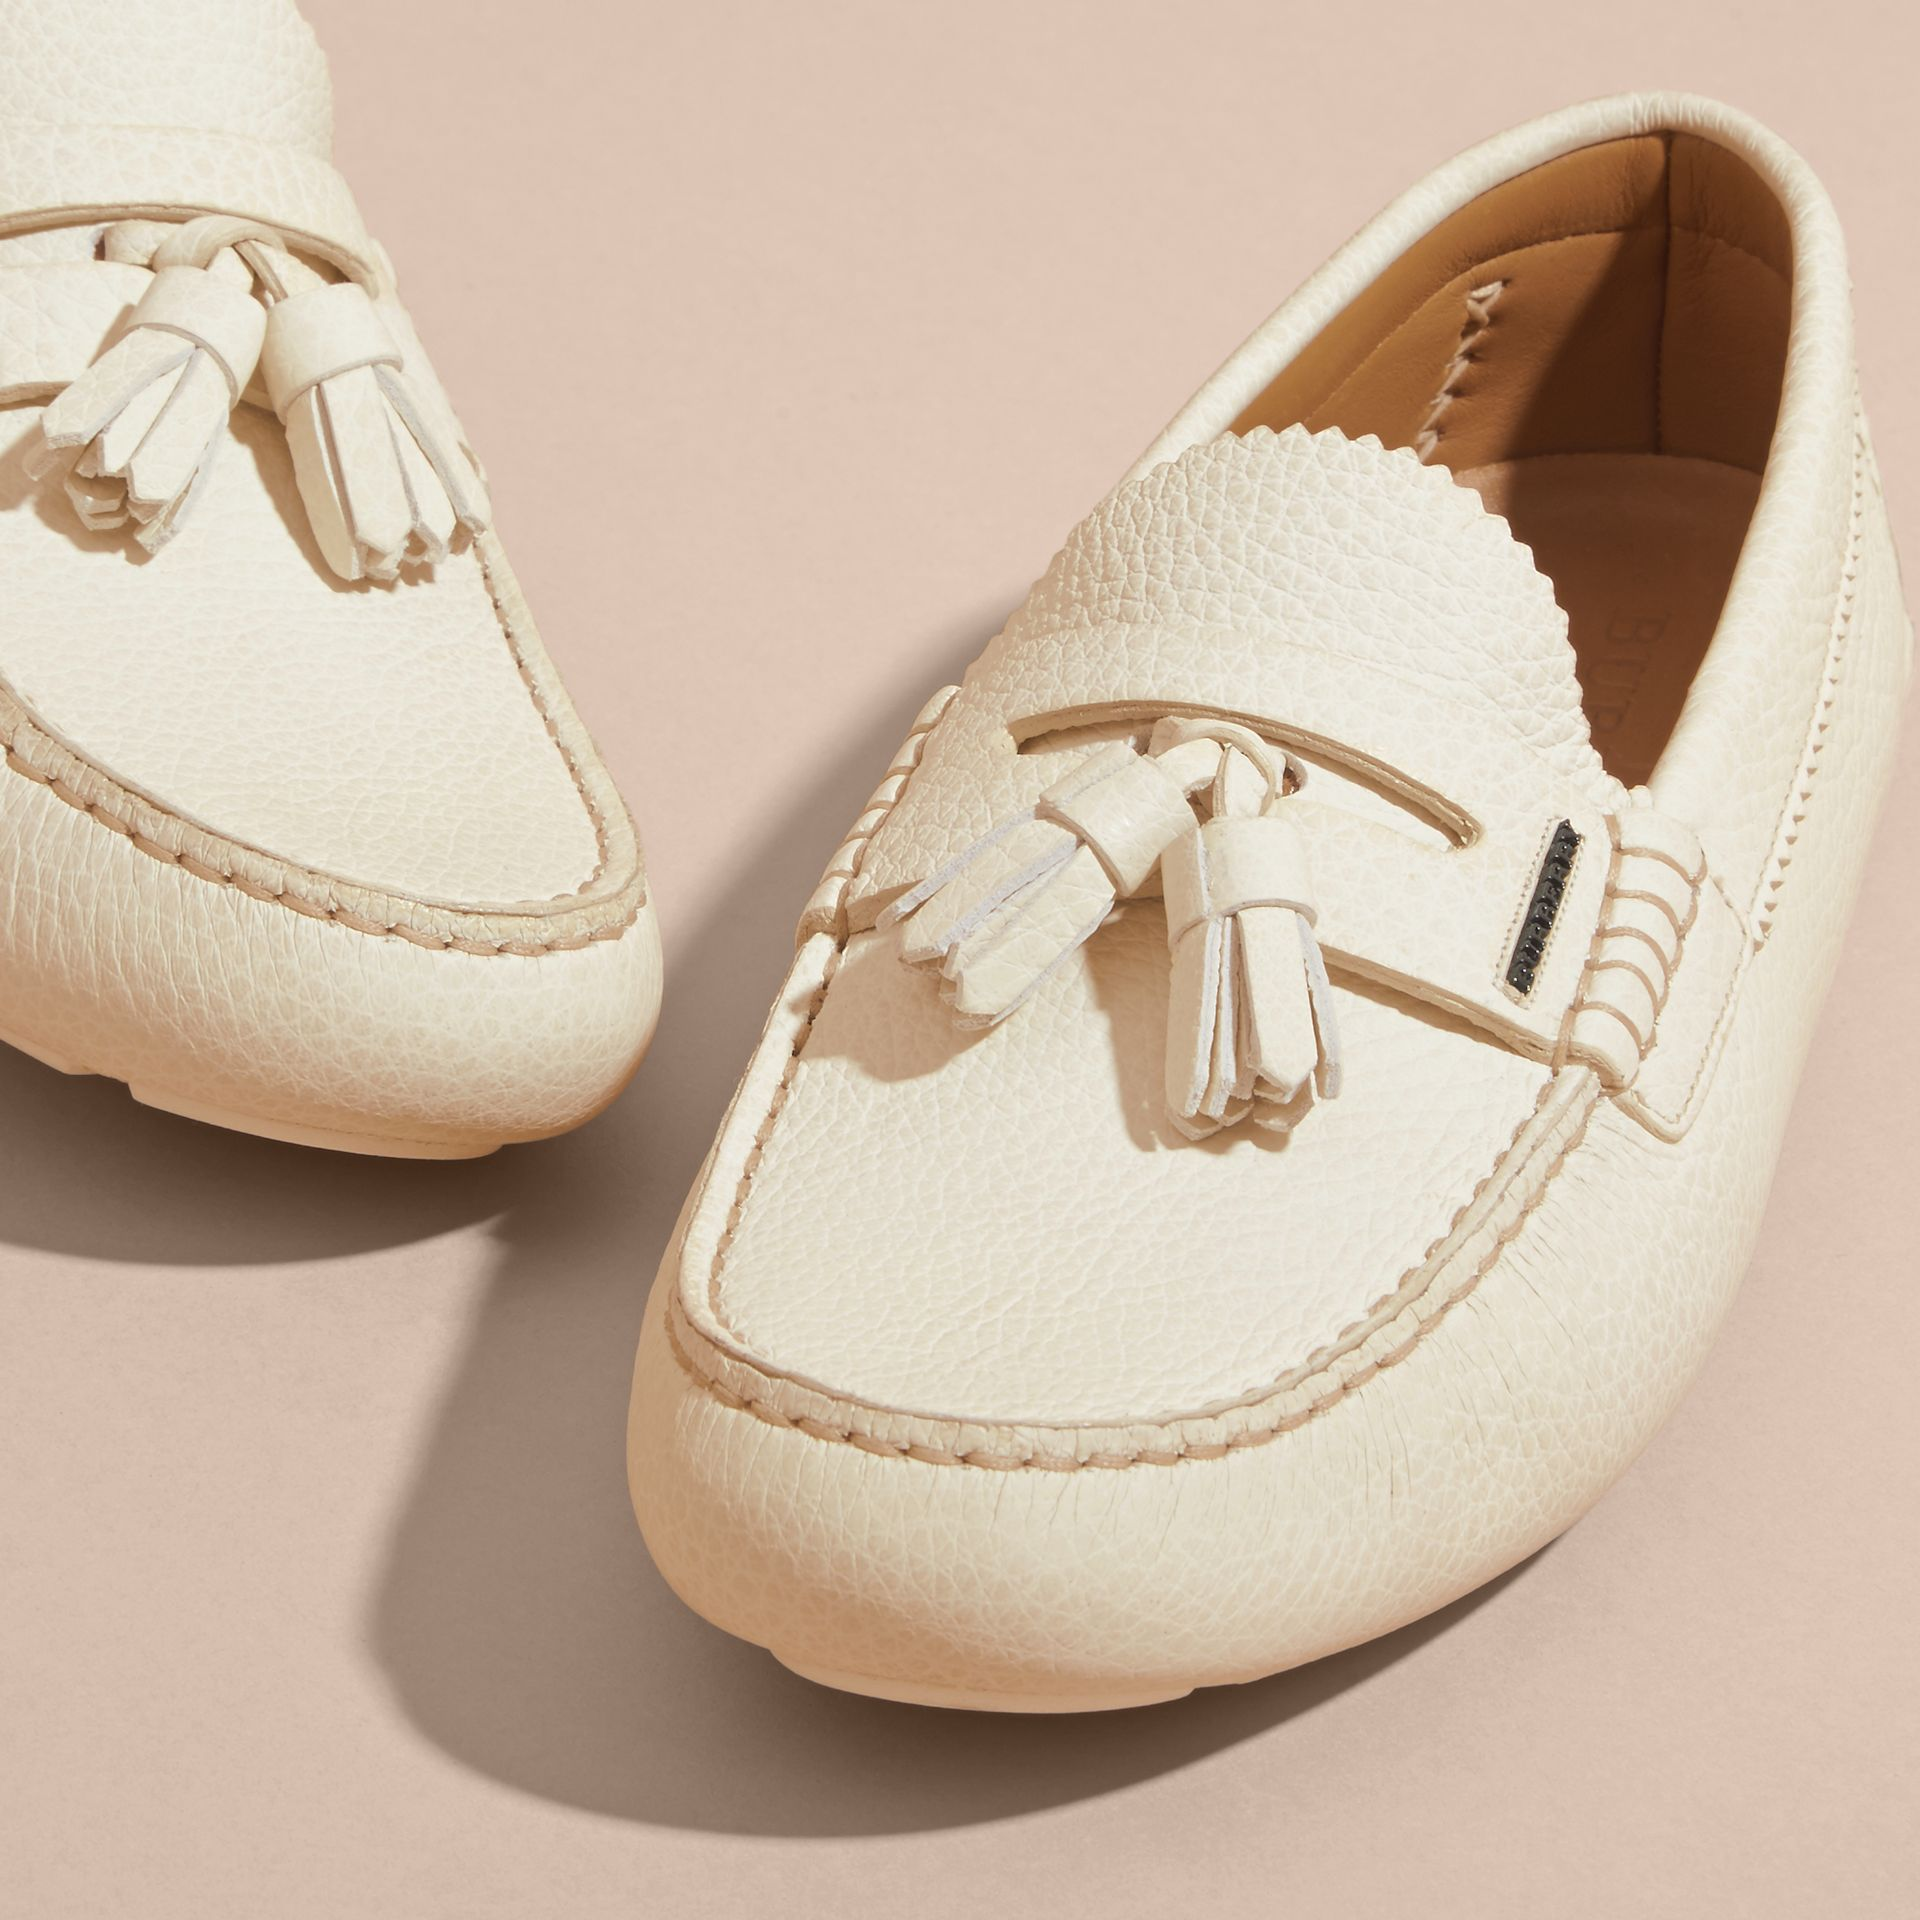 Tasselled Grainy Leather Loafers Off White - gallery image 3